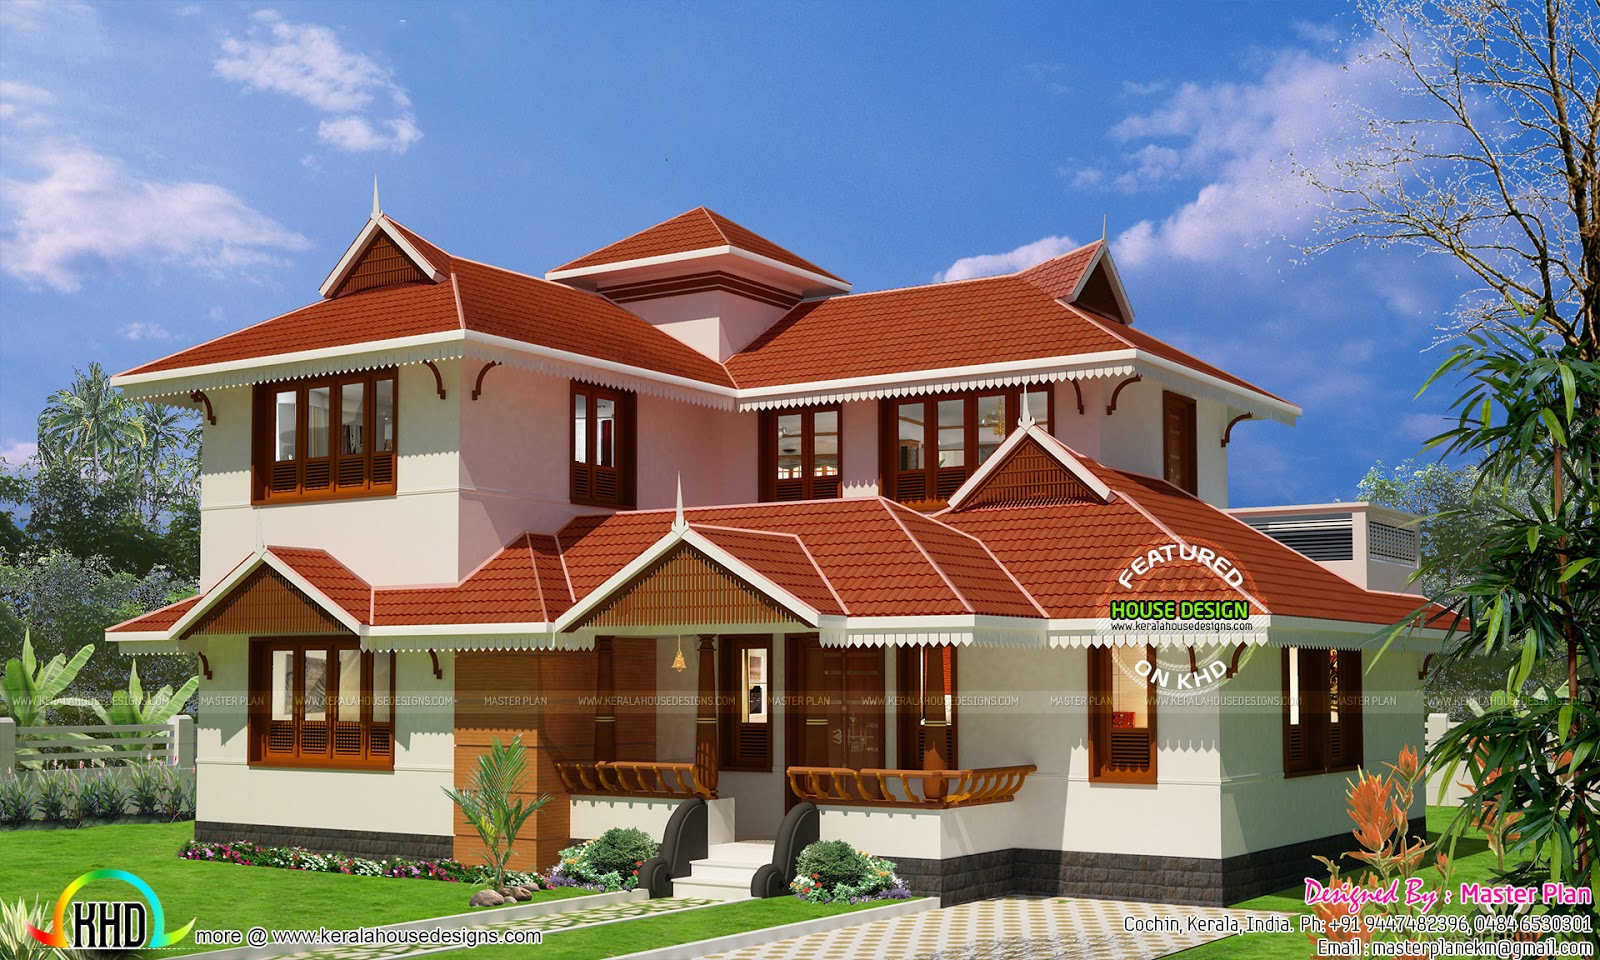 Kerala traditional home at bengaluru kerala home design for Kerala traditional home plans with photos